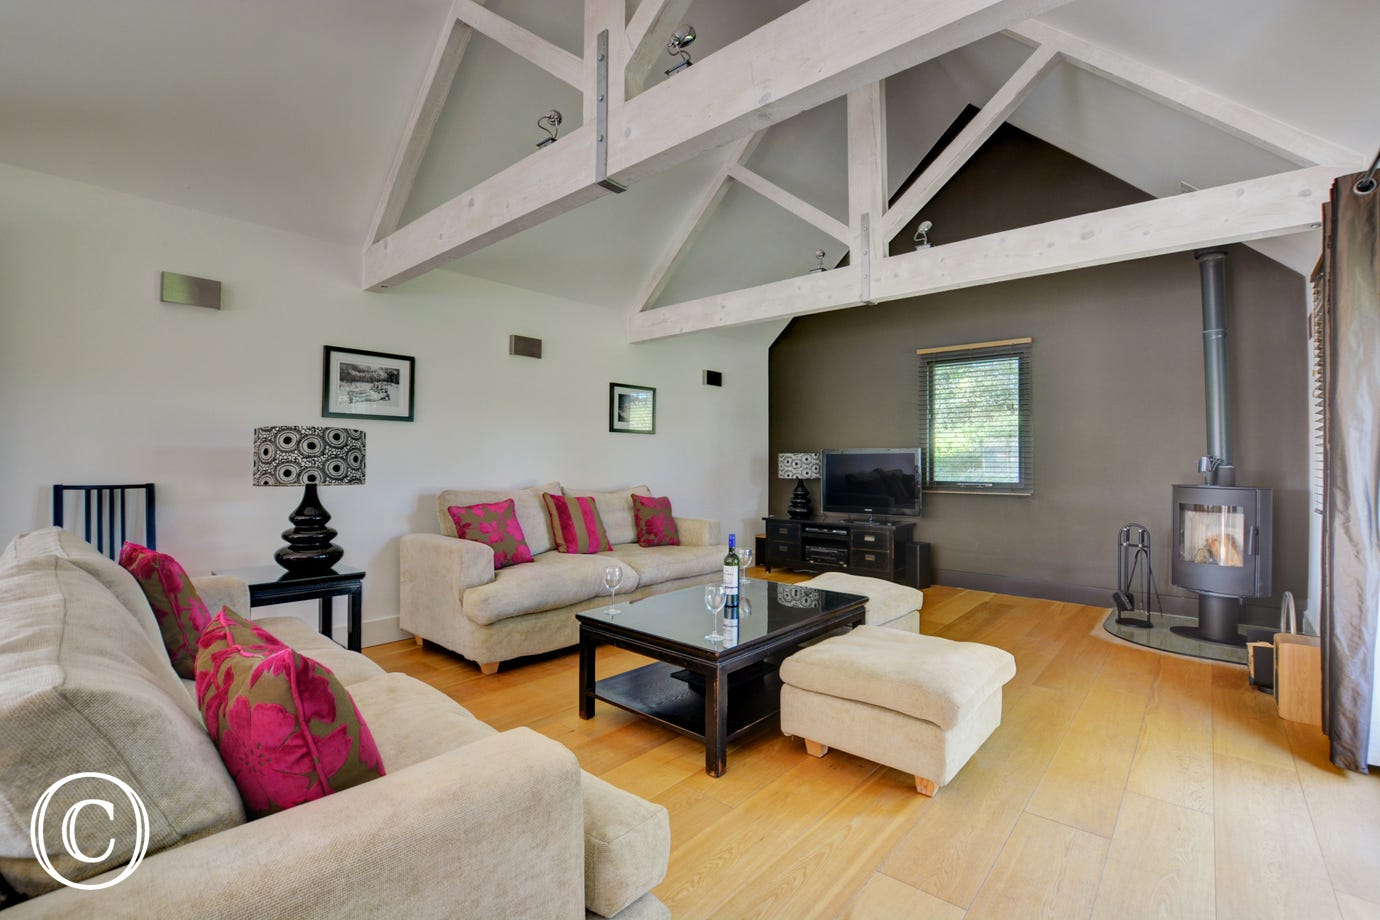 Taylors Barn - Attractive and spacious Sitting Area